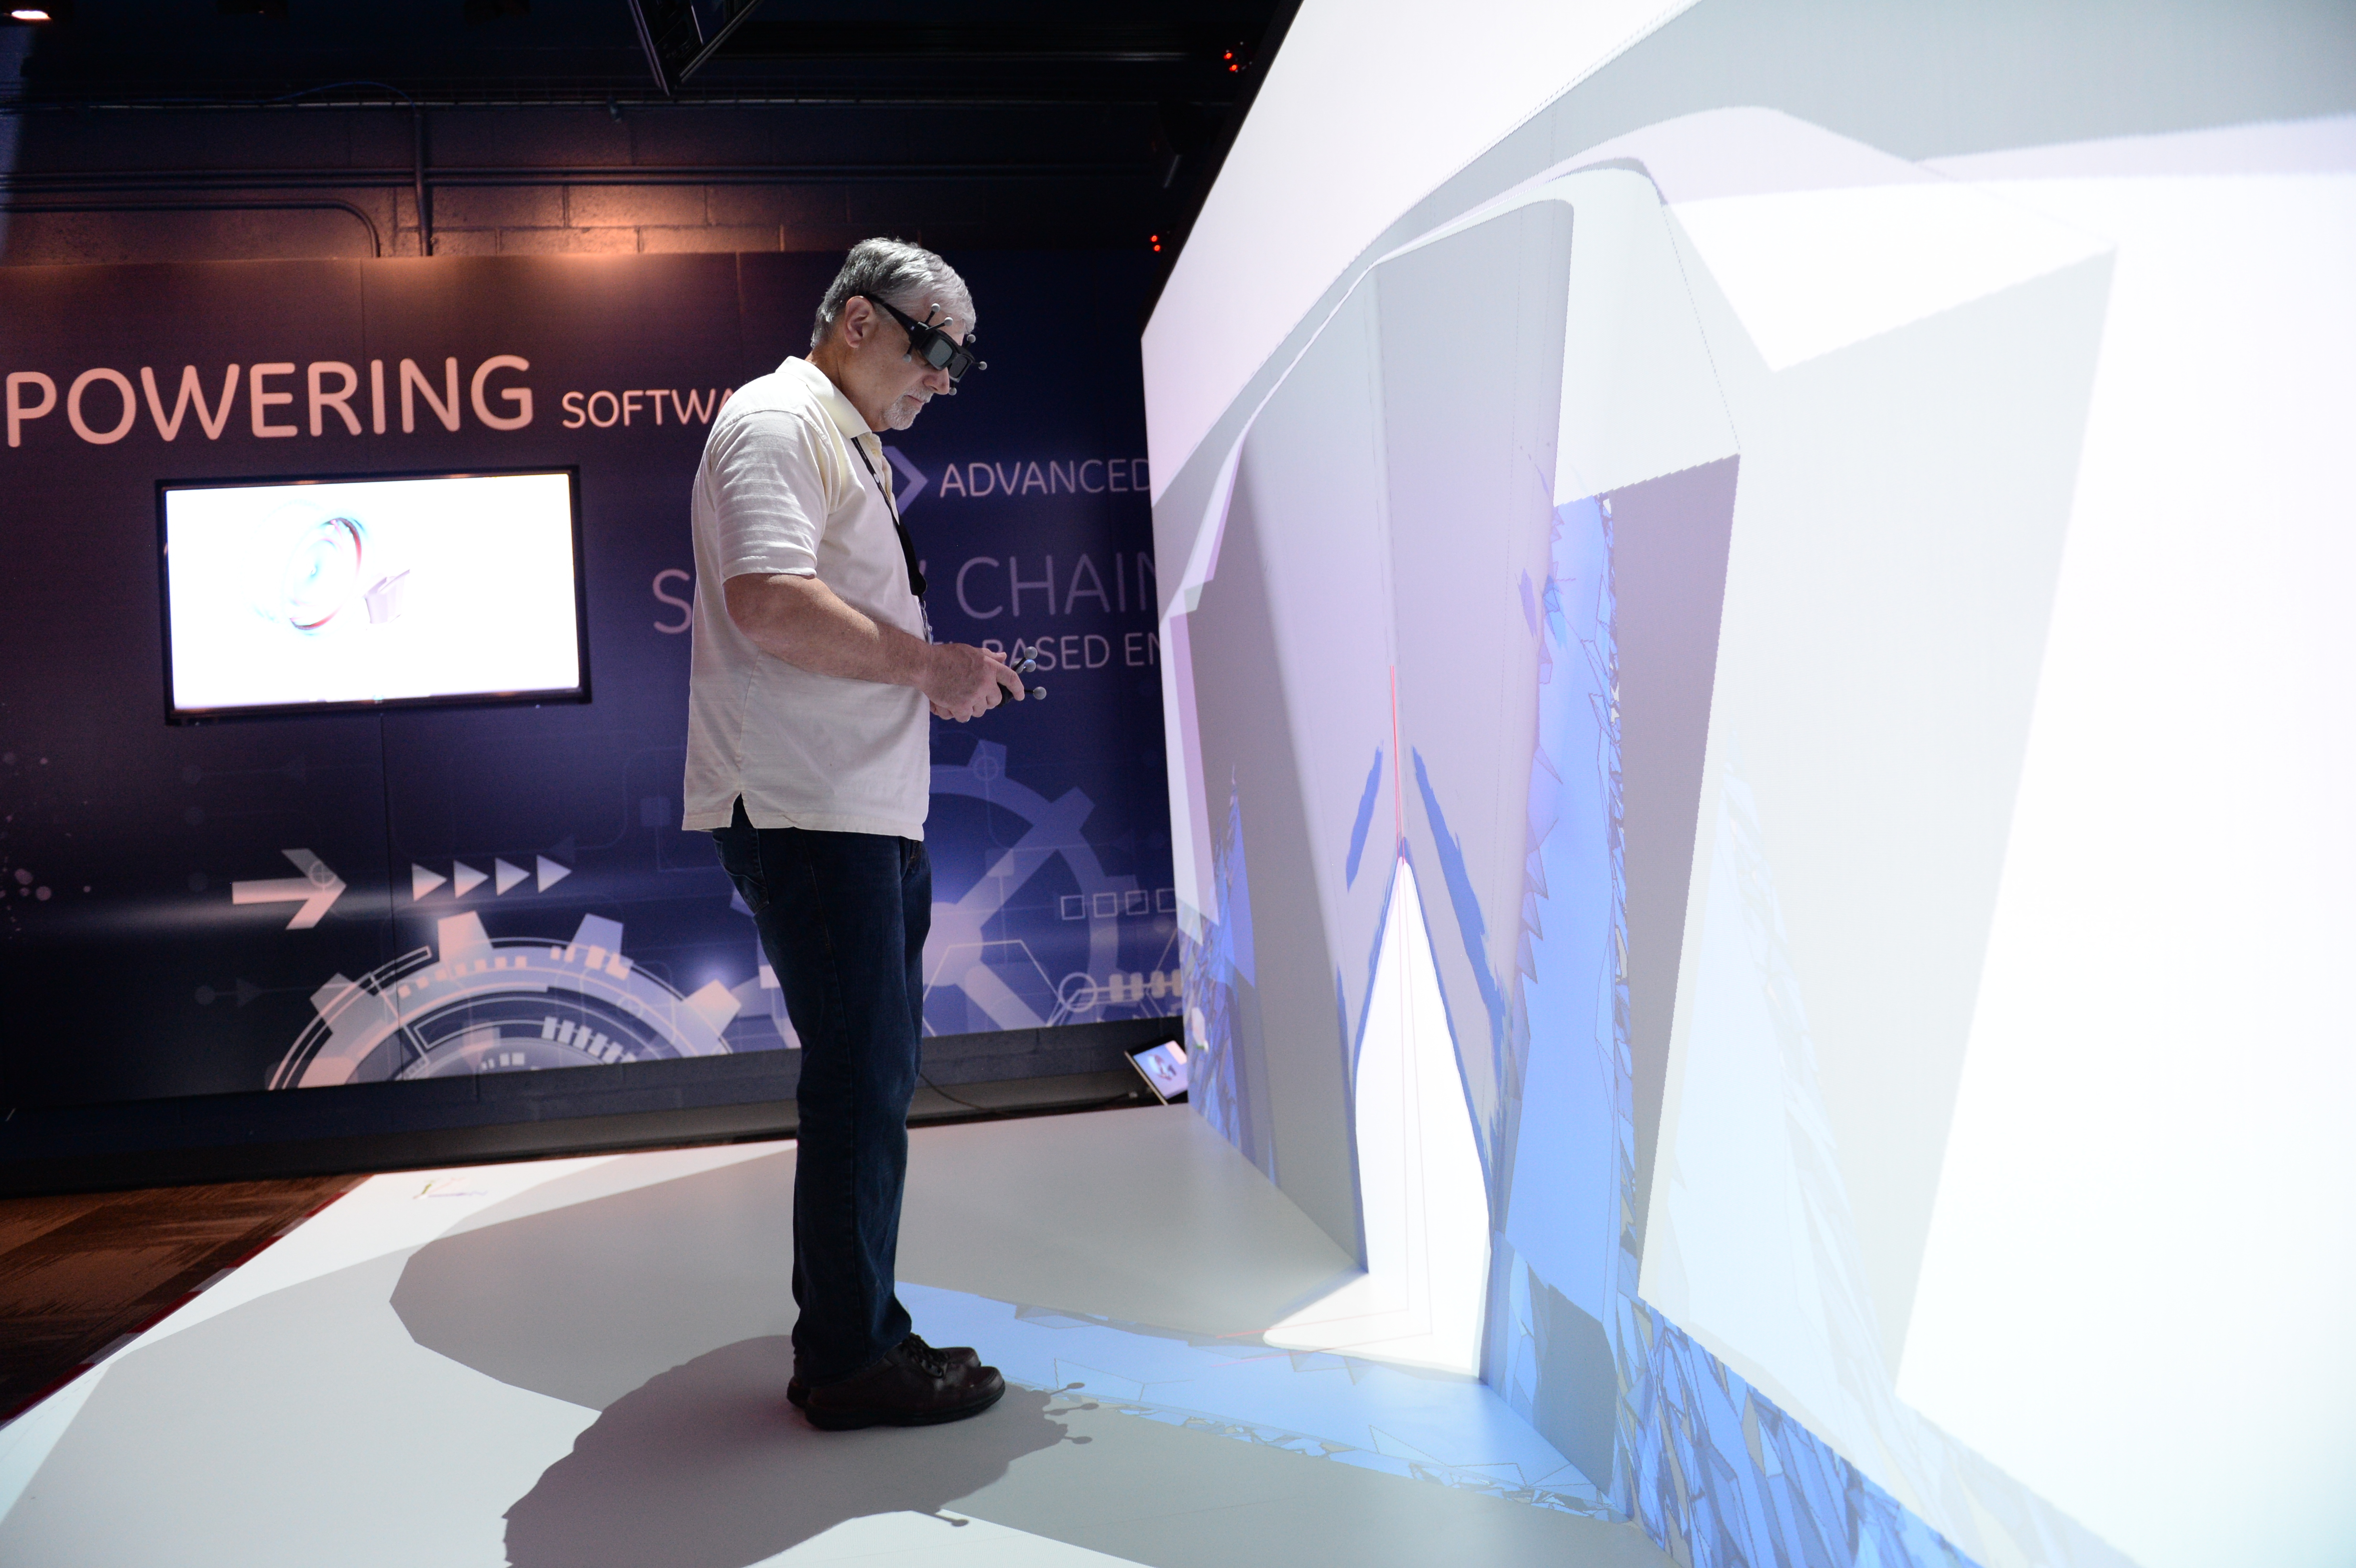 Virtual engineering - with digital tools, manufacturing and design engineers can study parts and the manufacturing processes for those parts virtually before you even have a final prototype part using three dimensional views like the one pictured in GE's Brilliant Factory Lab. Here, one of GE's manufacturing specialists examines a test part.